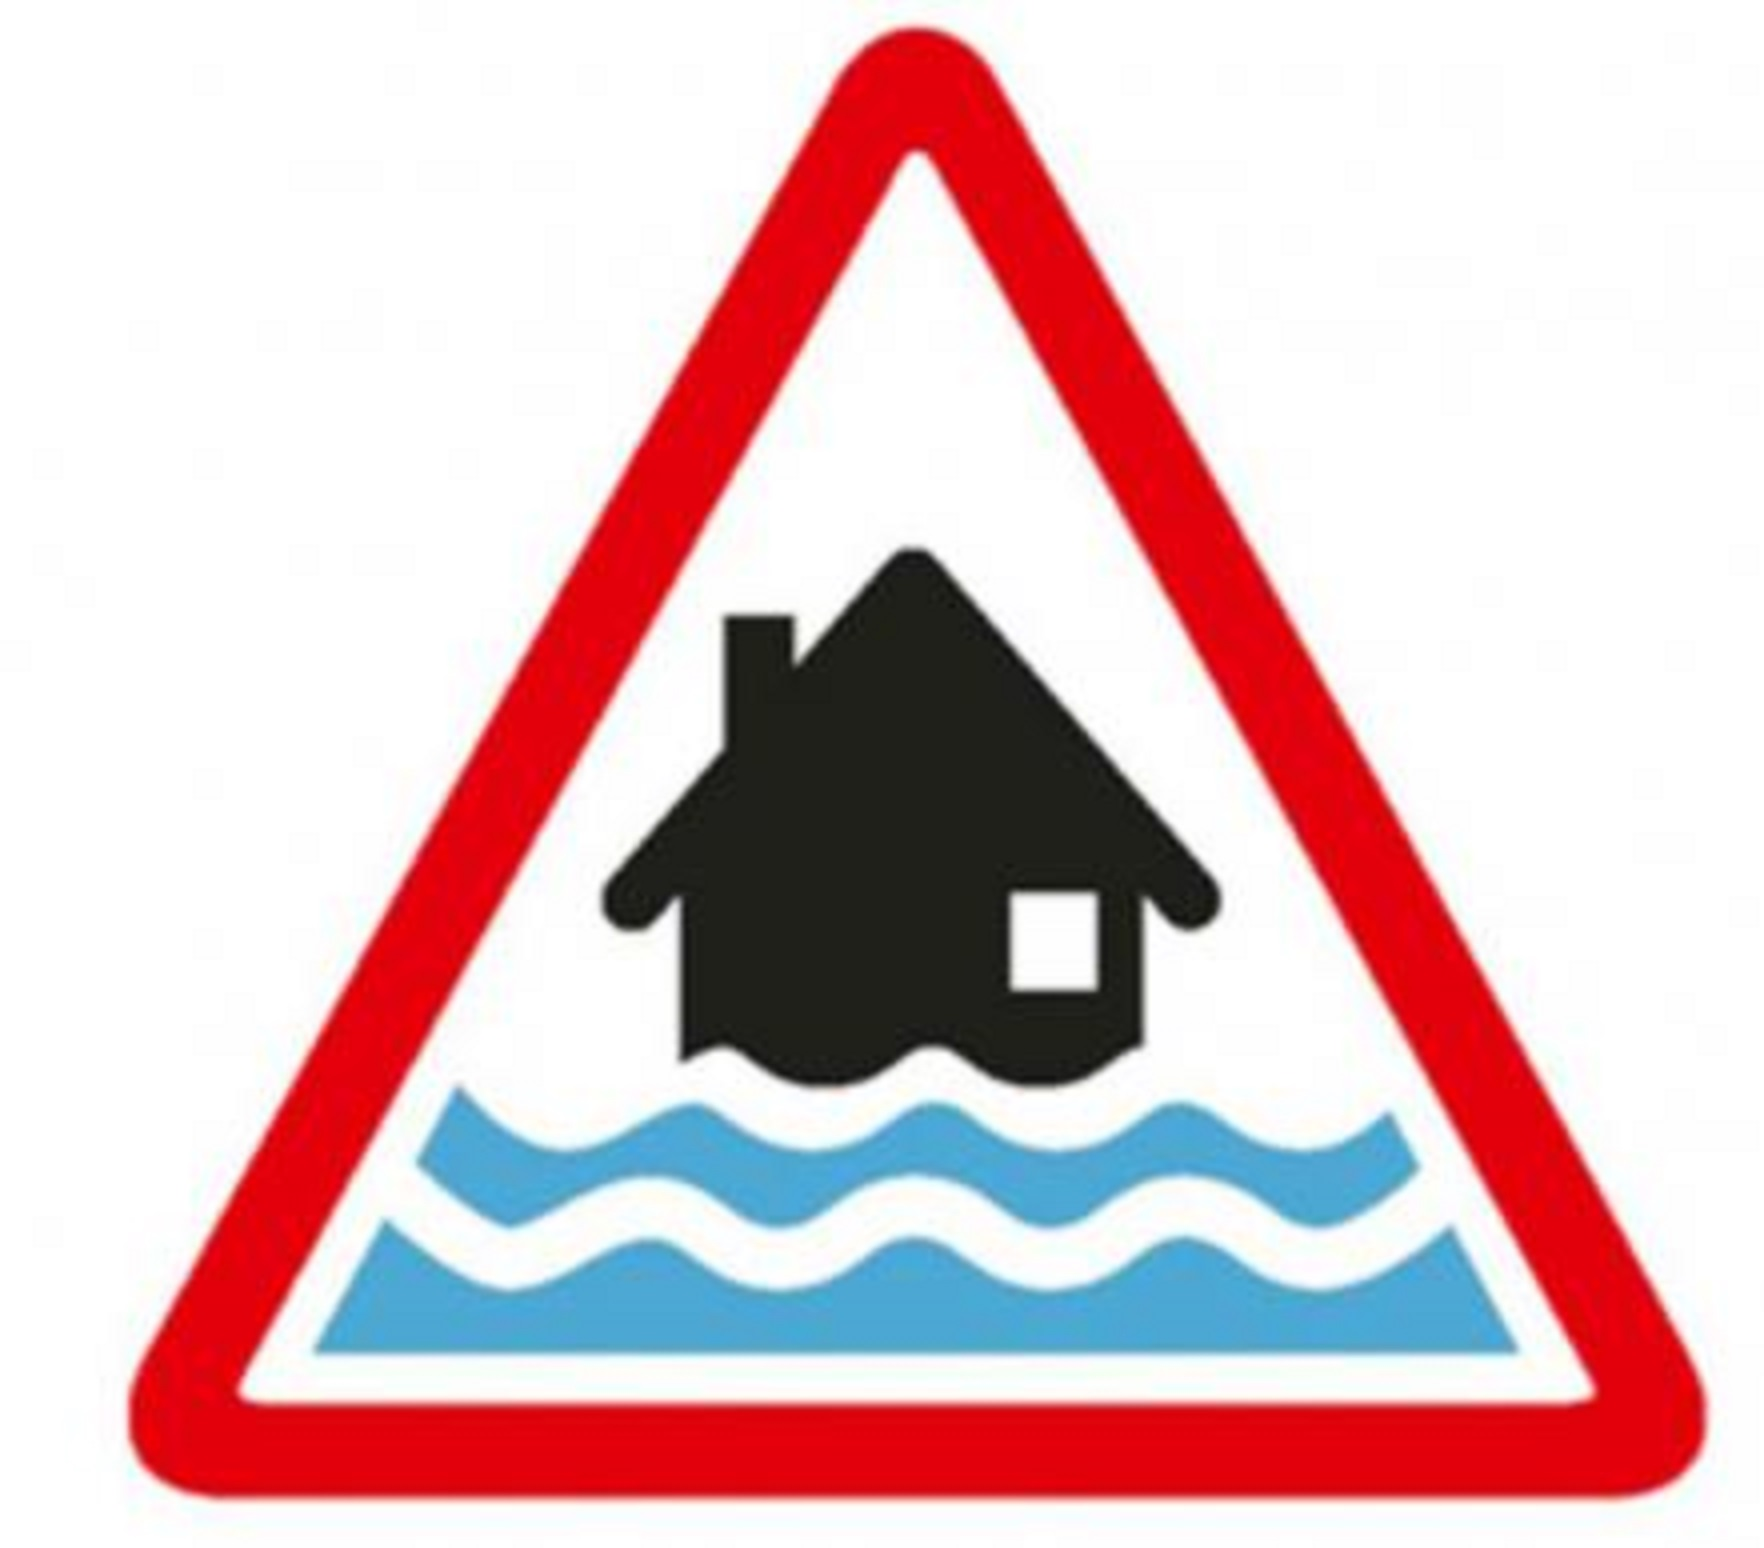 Update: Flood warning issued for Witney